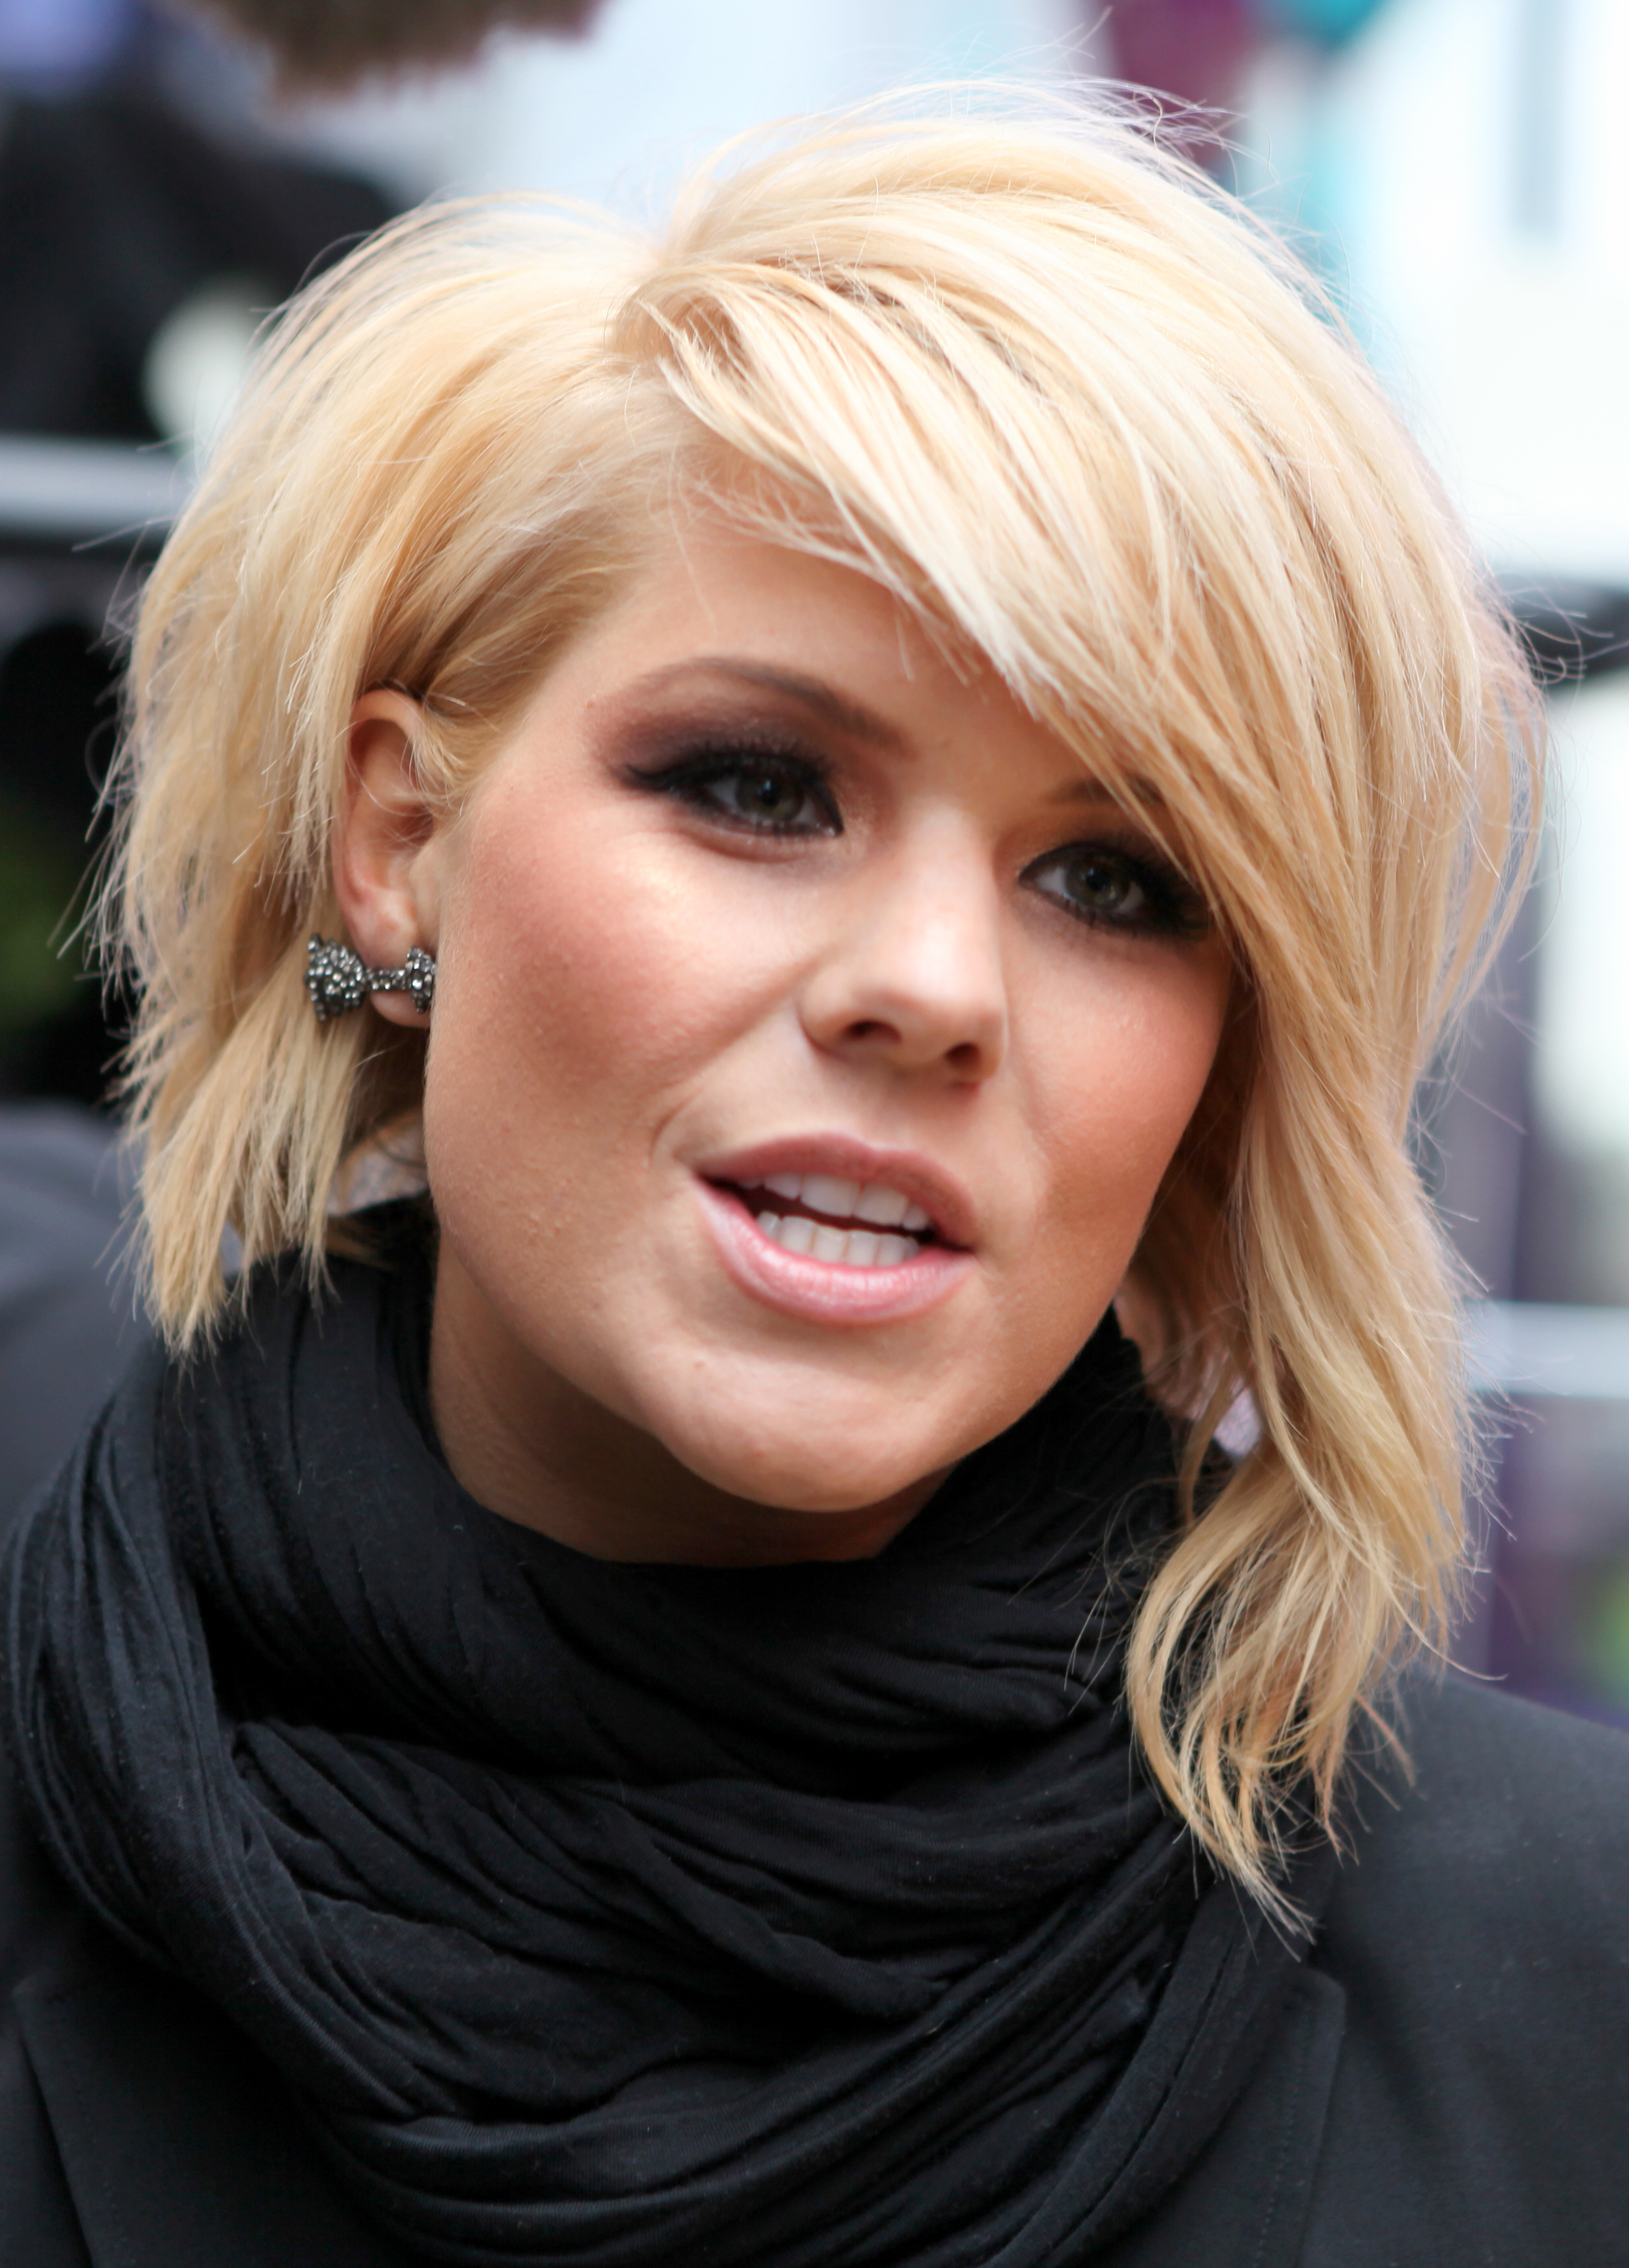 One Side Short Haircut - Hairstyle For Women & Man for Short Haircuts With One Side Longer Than The Other